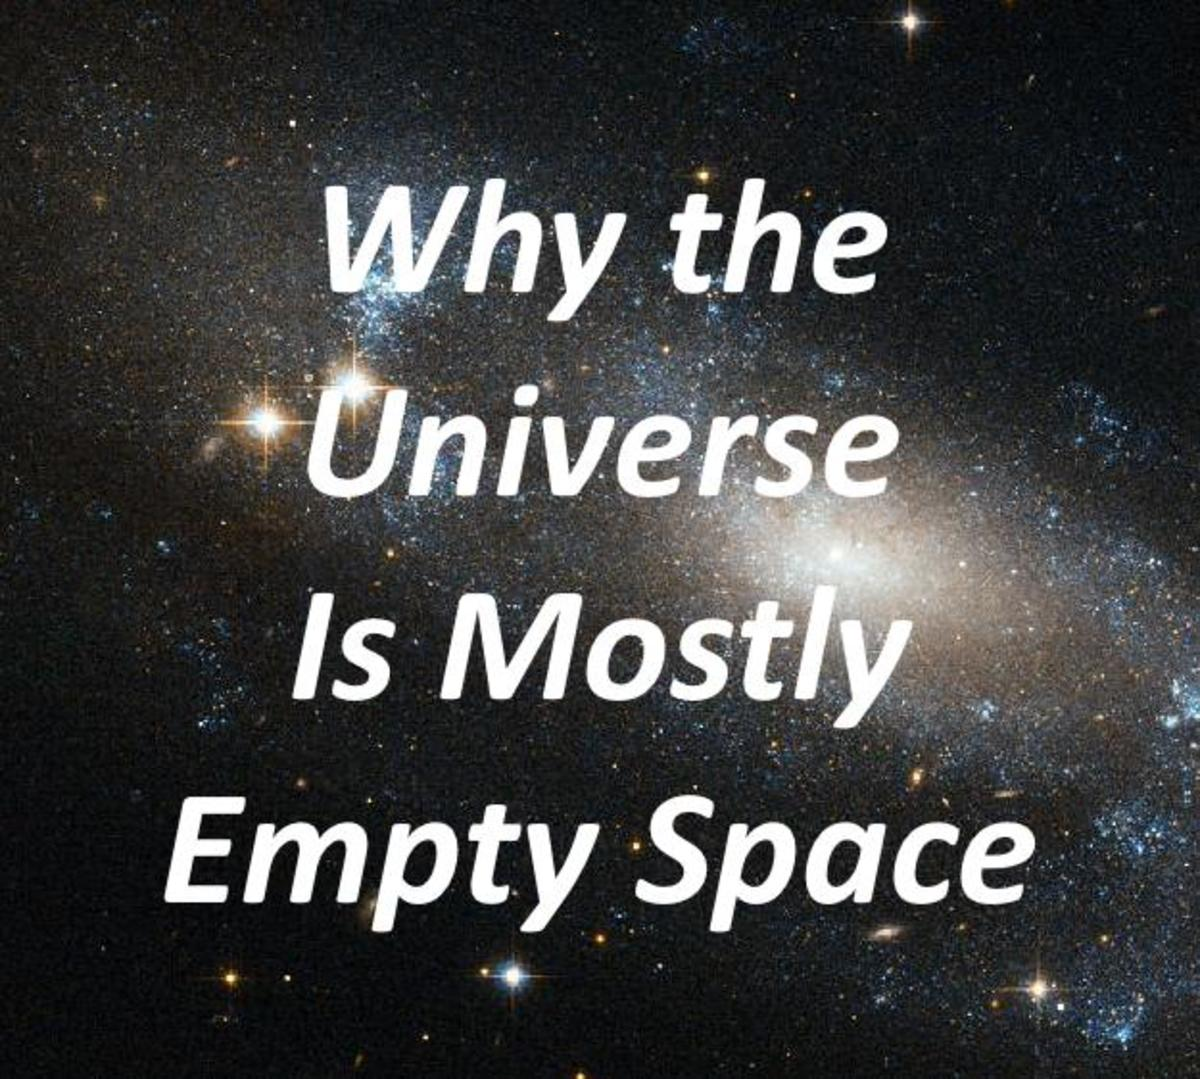 The Universe is mostly empty space